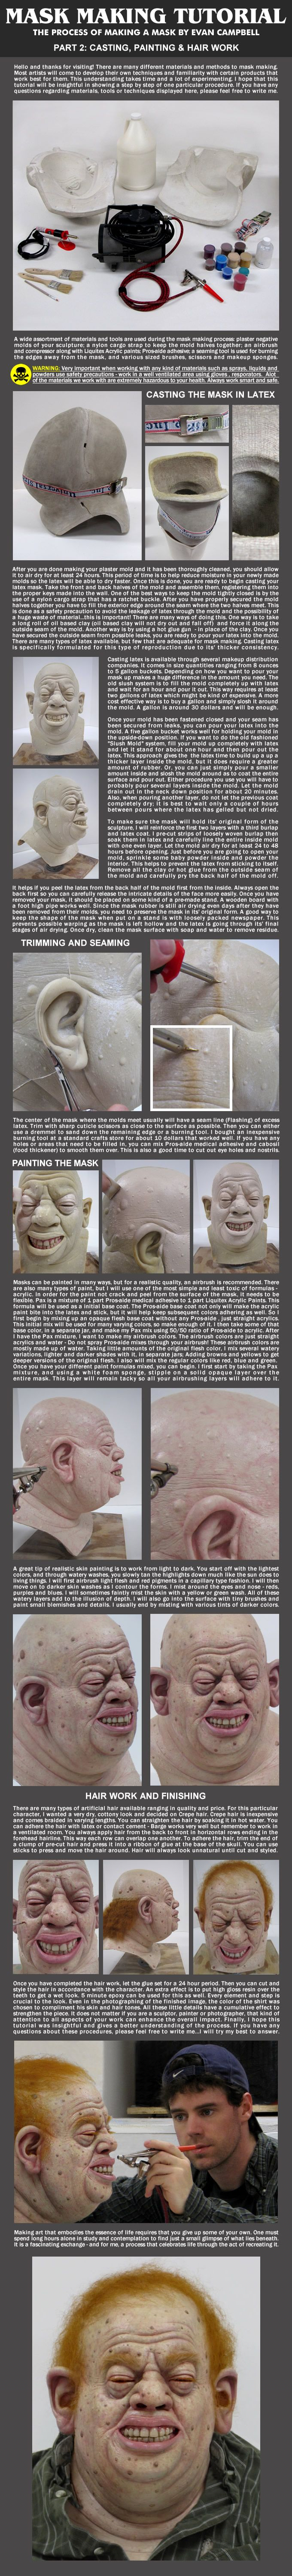 Mask Making Tutorial - Part Two